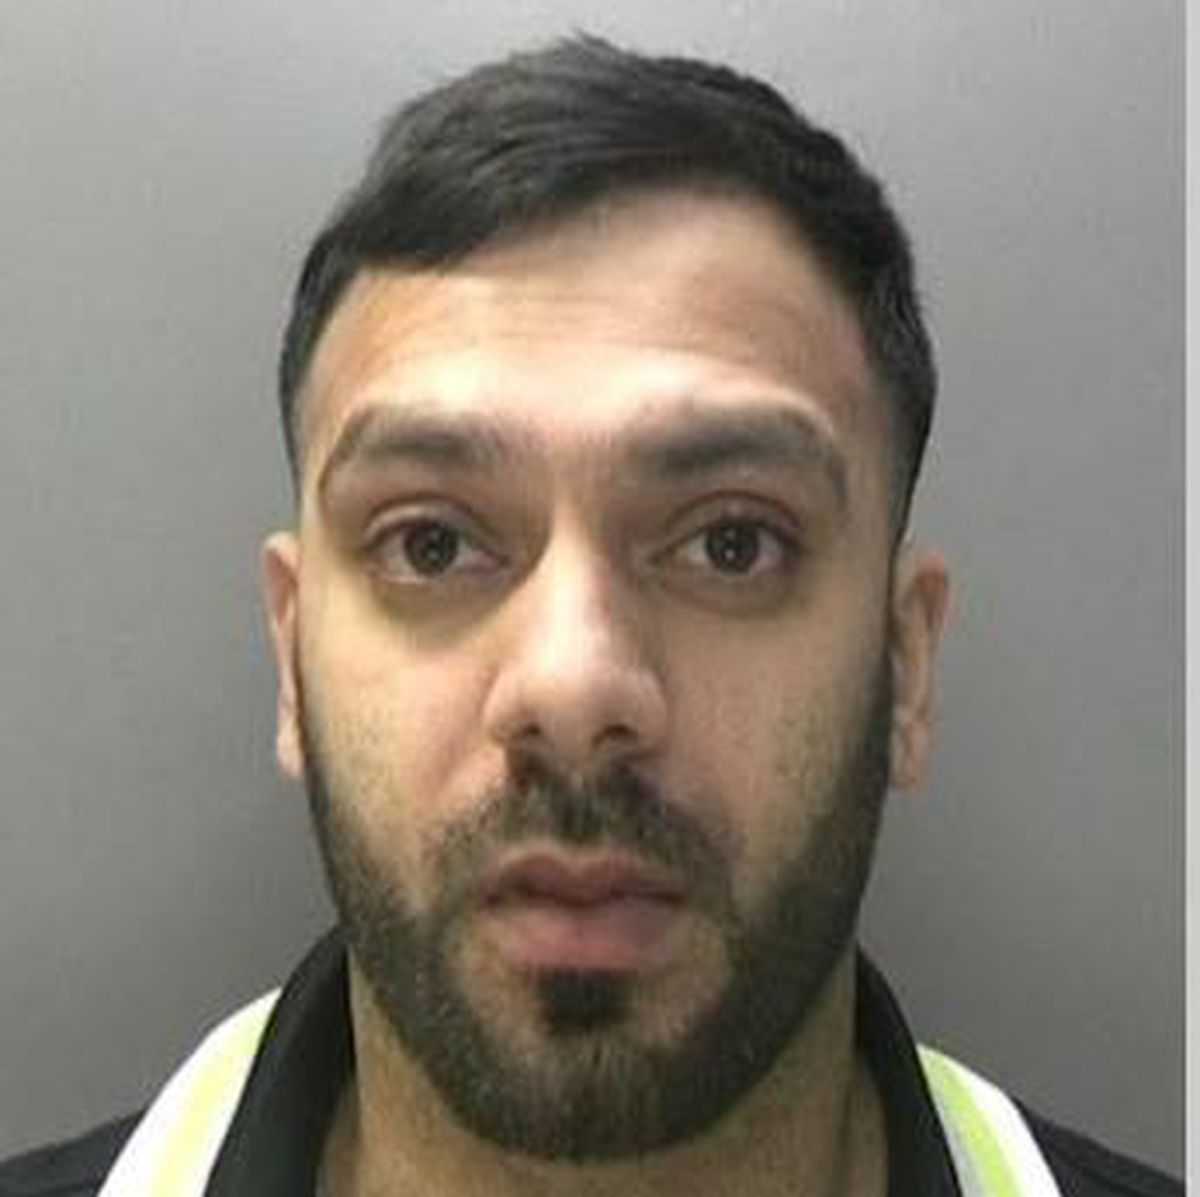 Rameez Ajaib has been locked up after a stash of heroin and cocaine was found by police